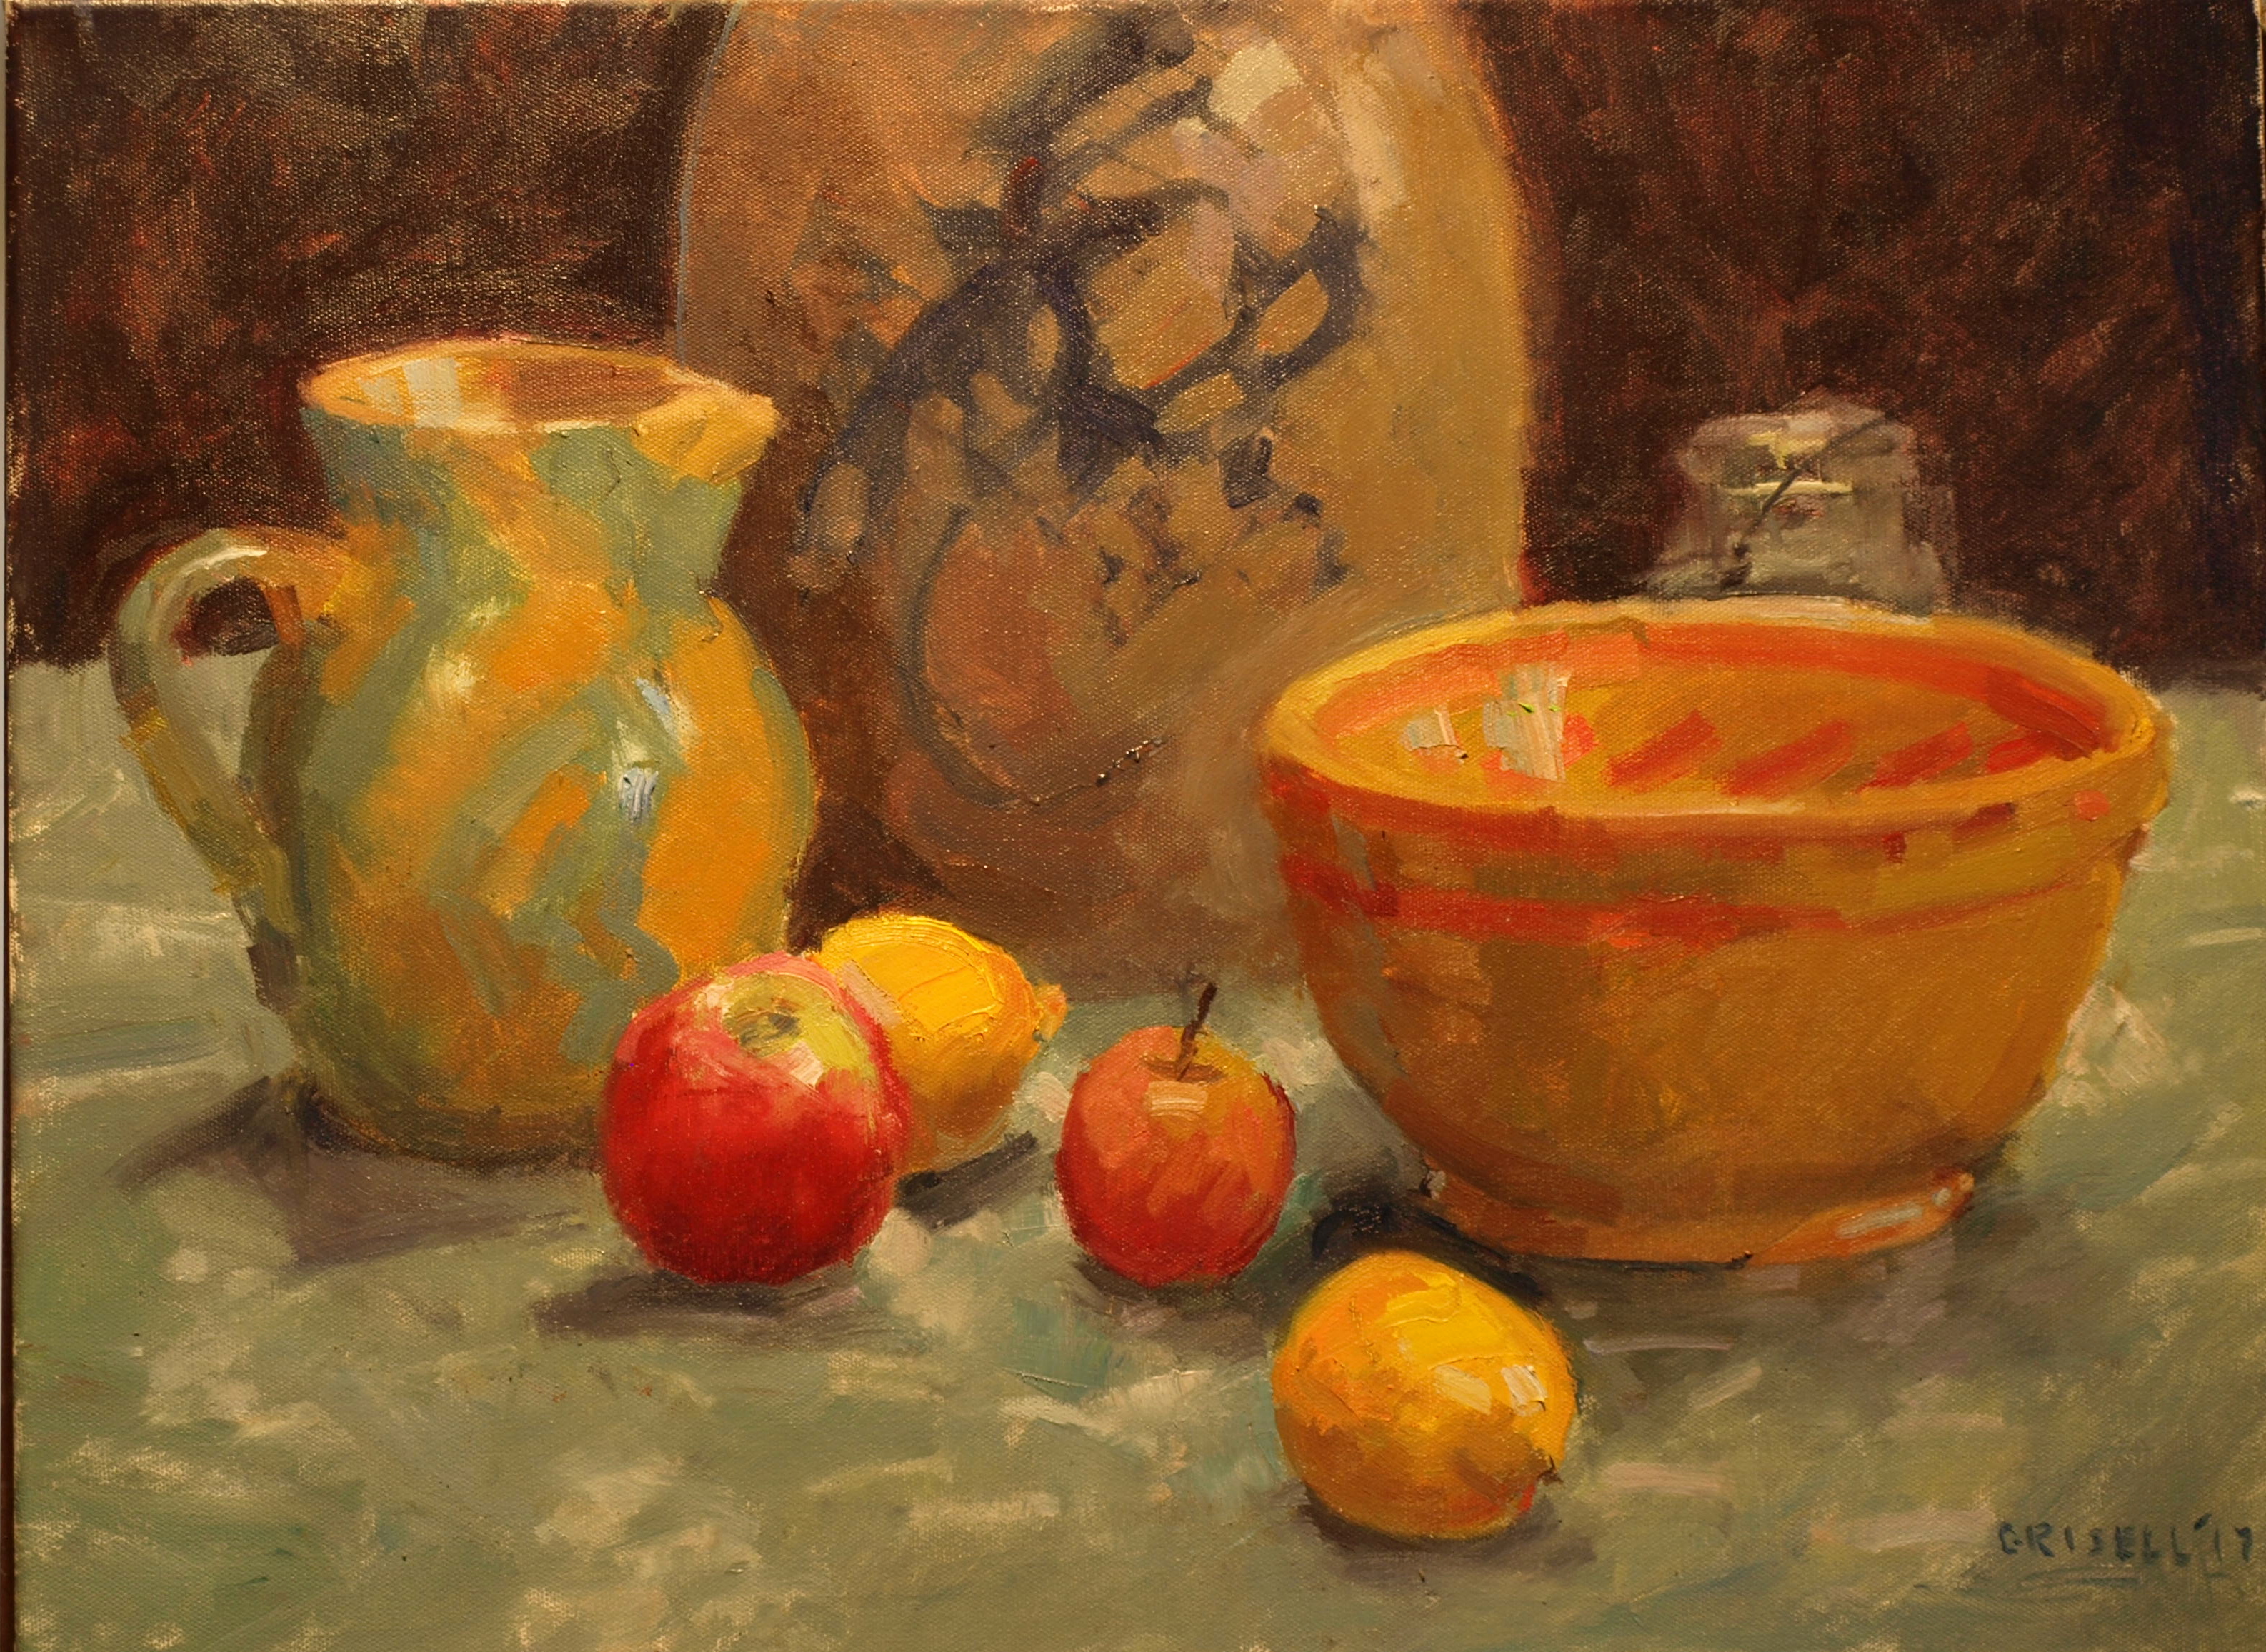 Tabletop Still Life, Oil on Canvas, 18 x 24 Inches, by Susan Grisell, $750